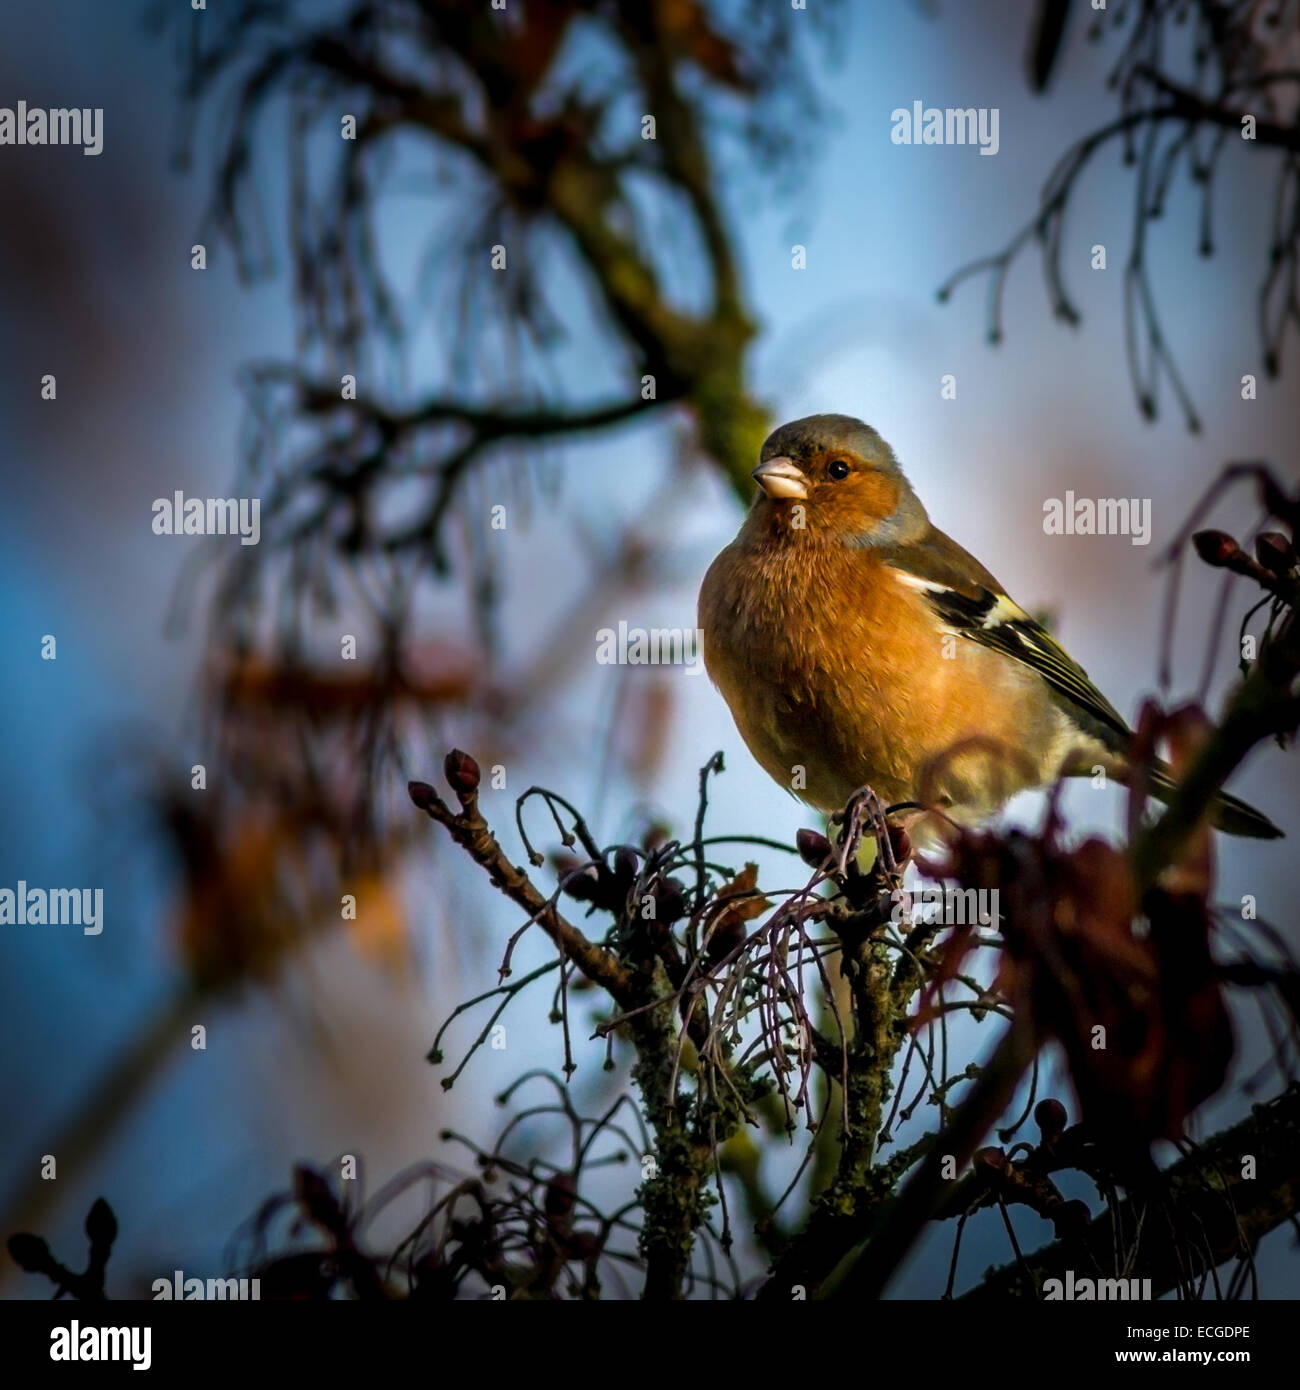 Chaffinch in the sunlight - Stock Image